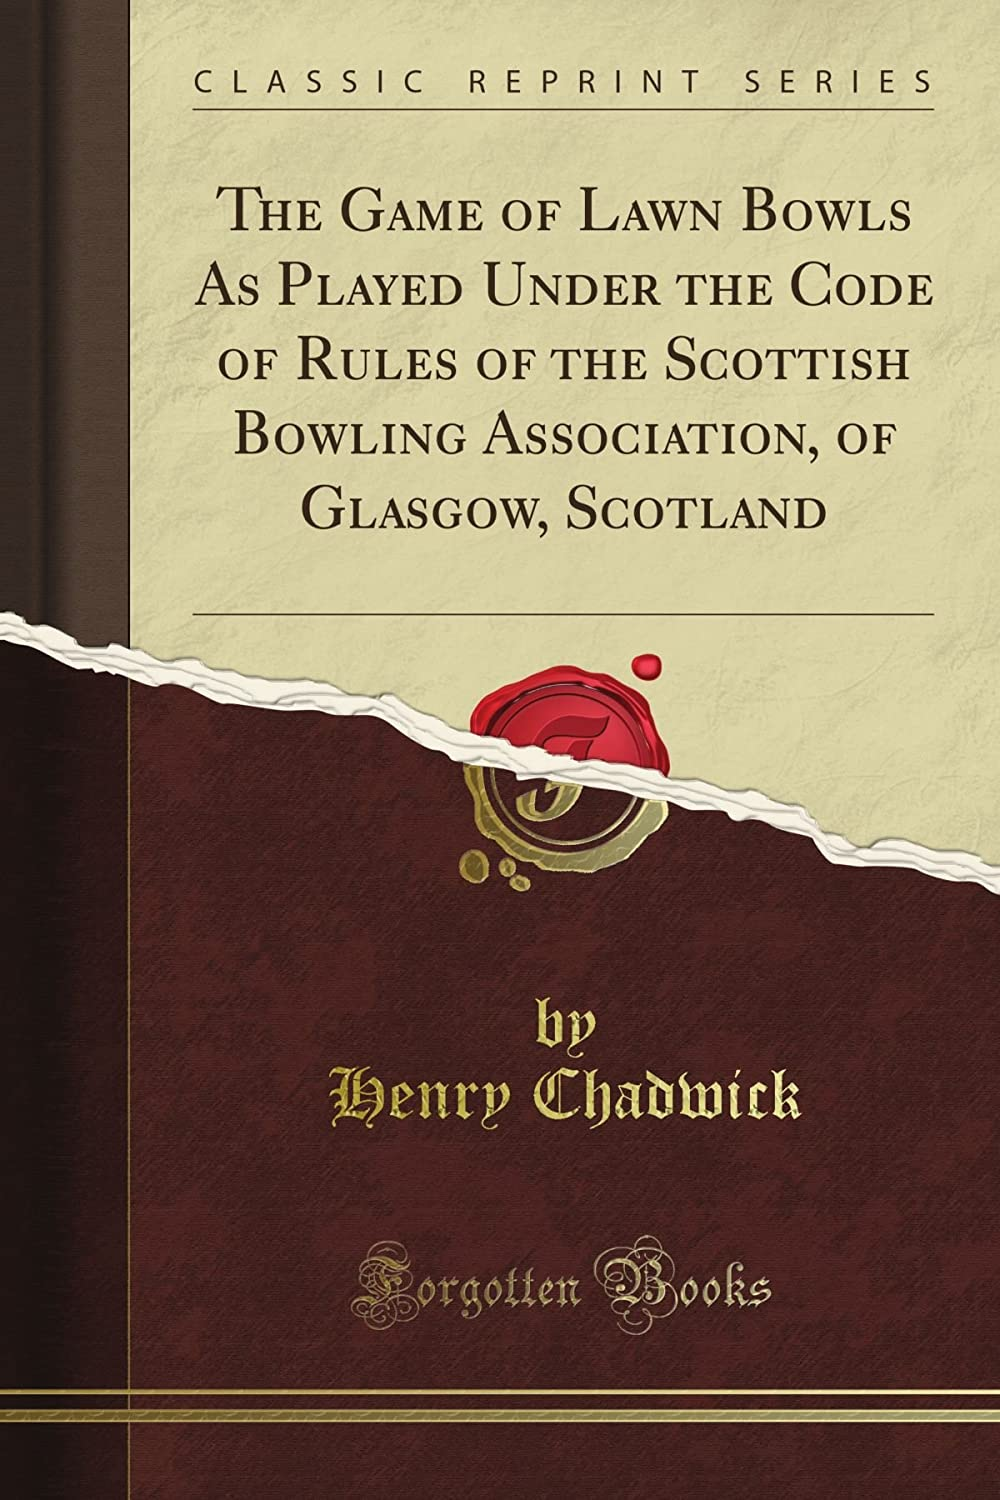 The Game of Lawn Bowls As Played Under the Code of Rules of the Scottish Bowling Association, of Glasgow, Scotland (Classic Reprint)